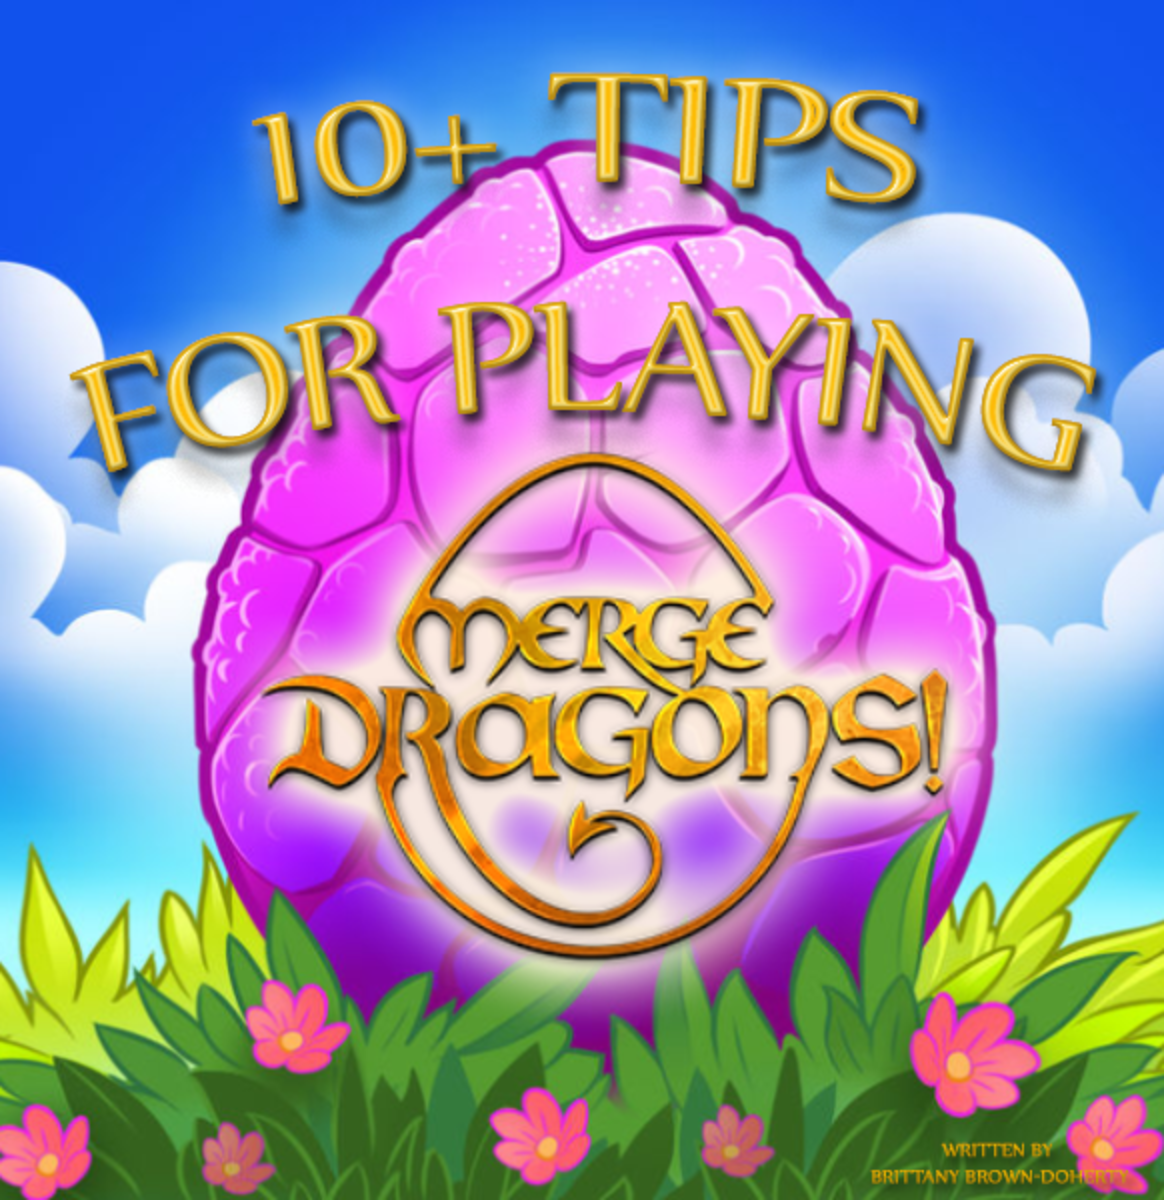 Hookup a player advice and consent drawings of dragons